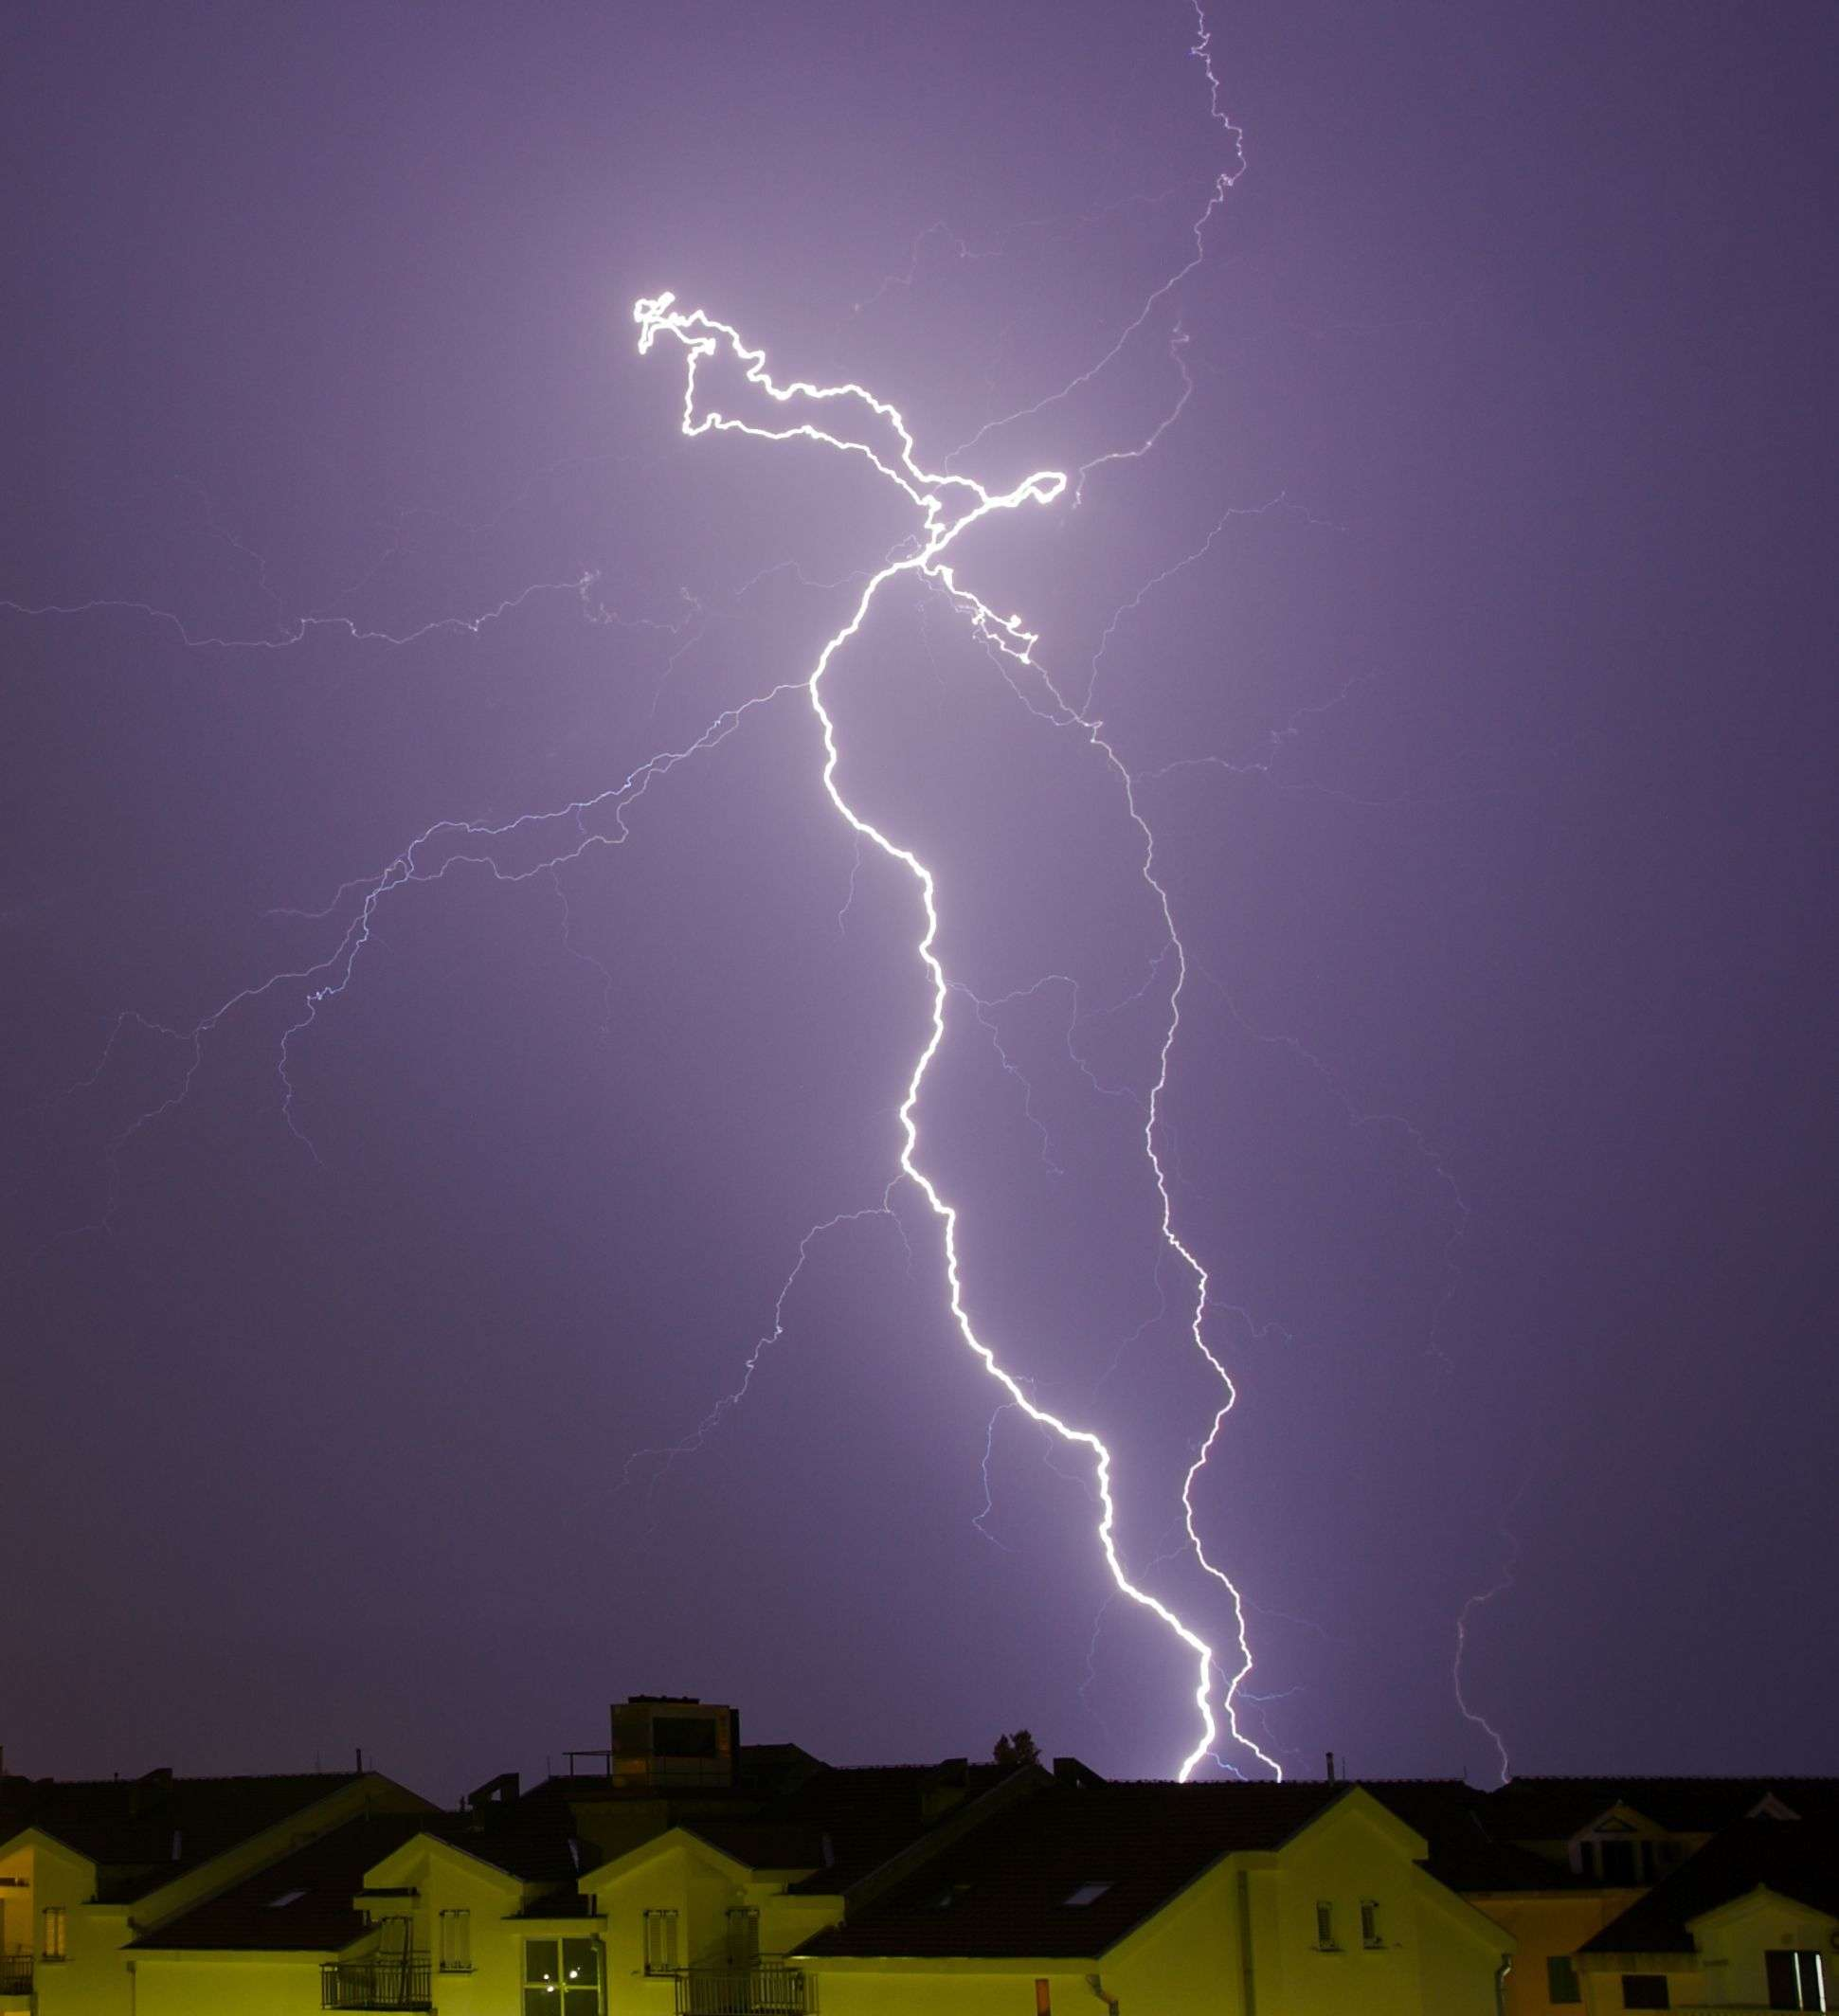 Homeowners Insurance And Lightning Damage